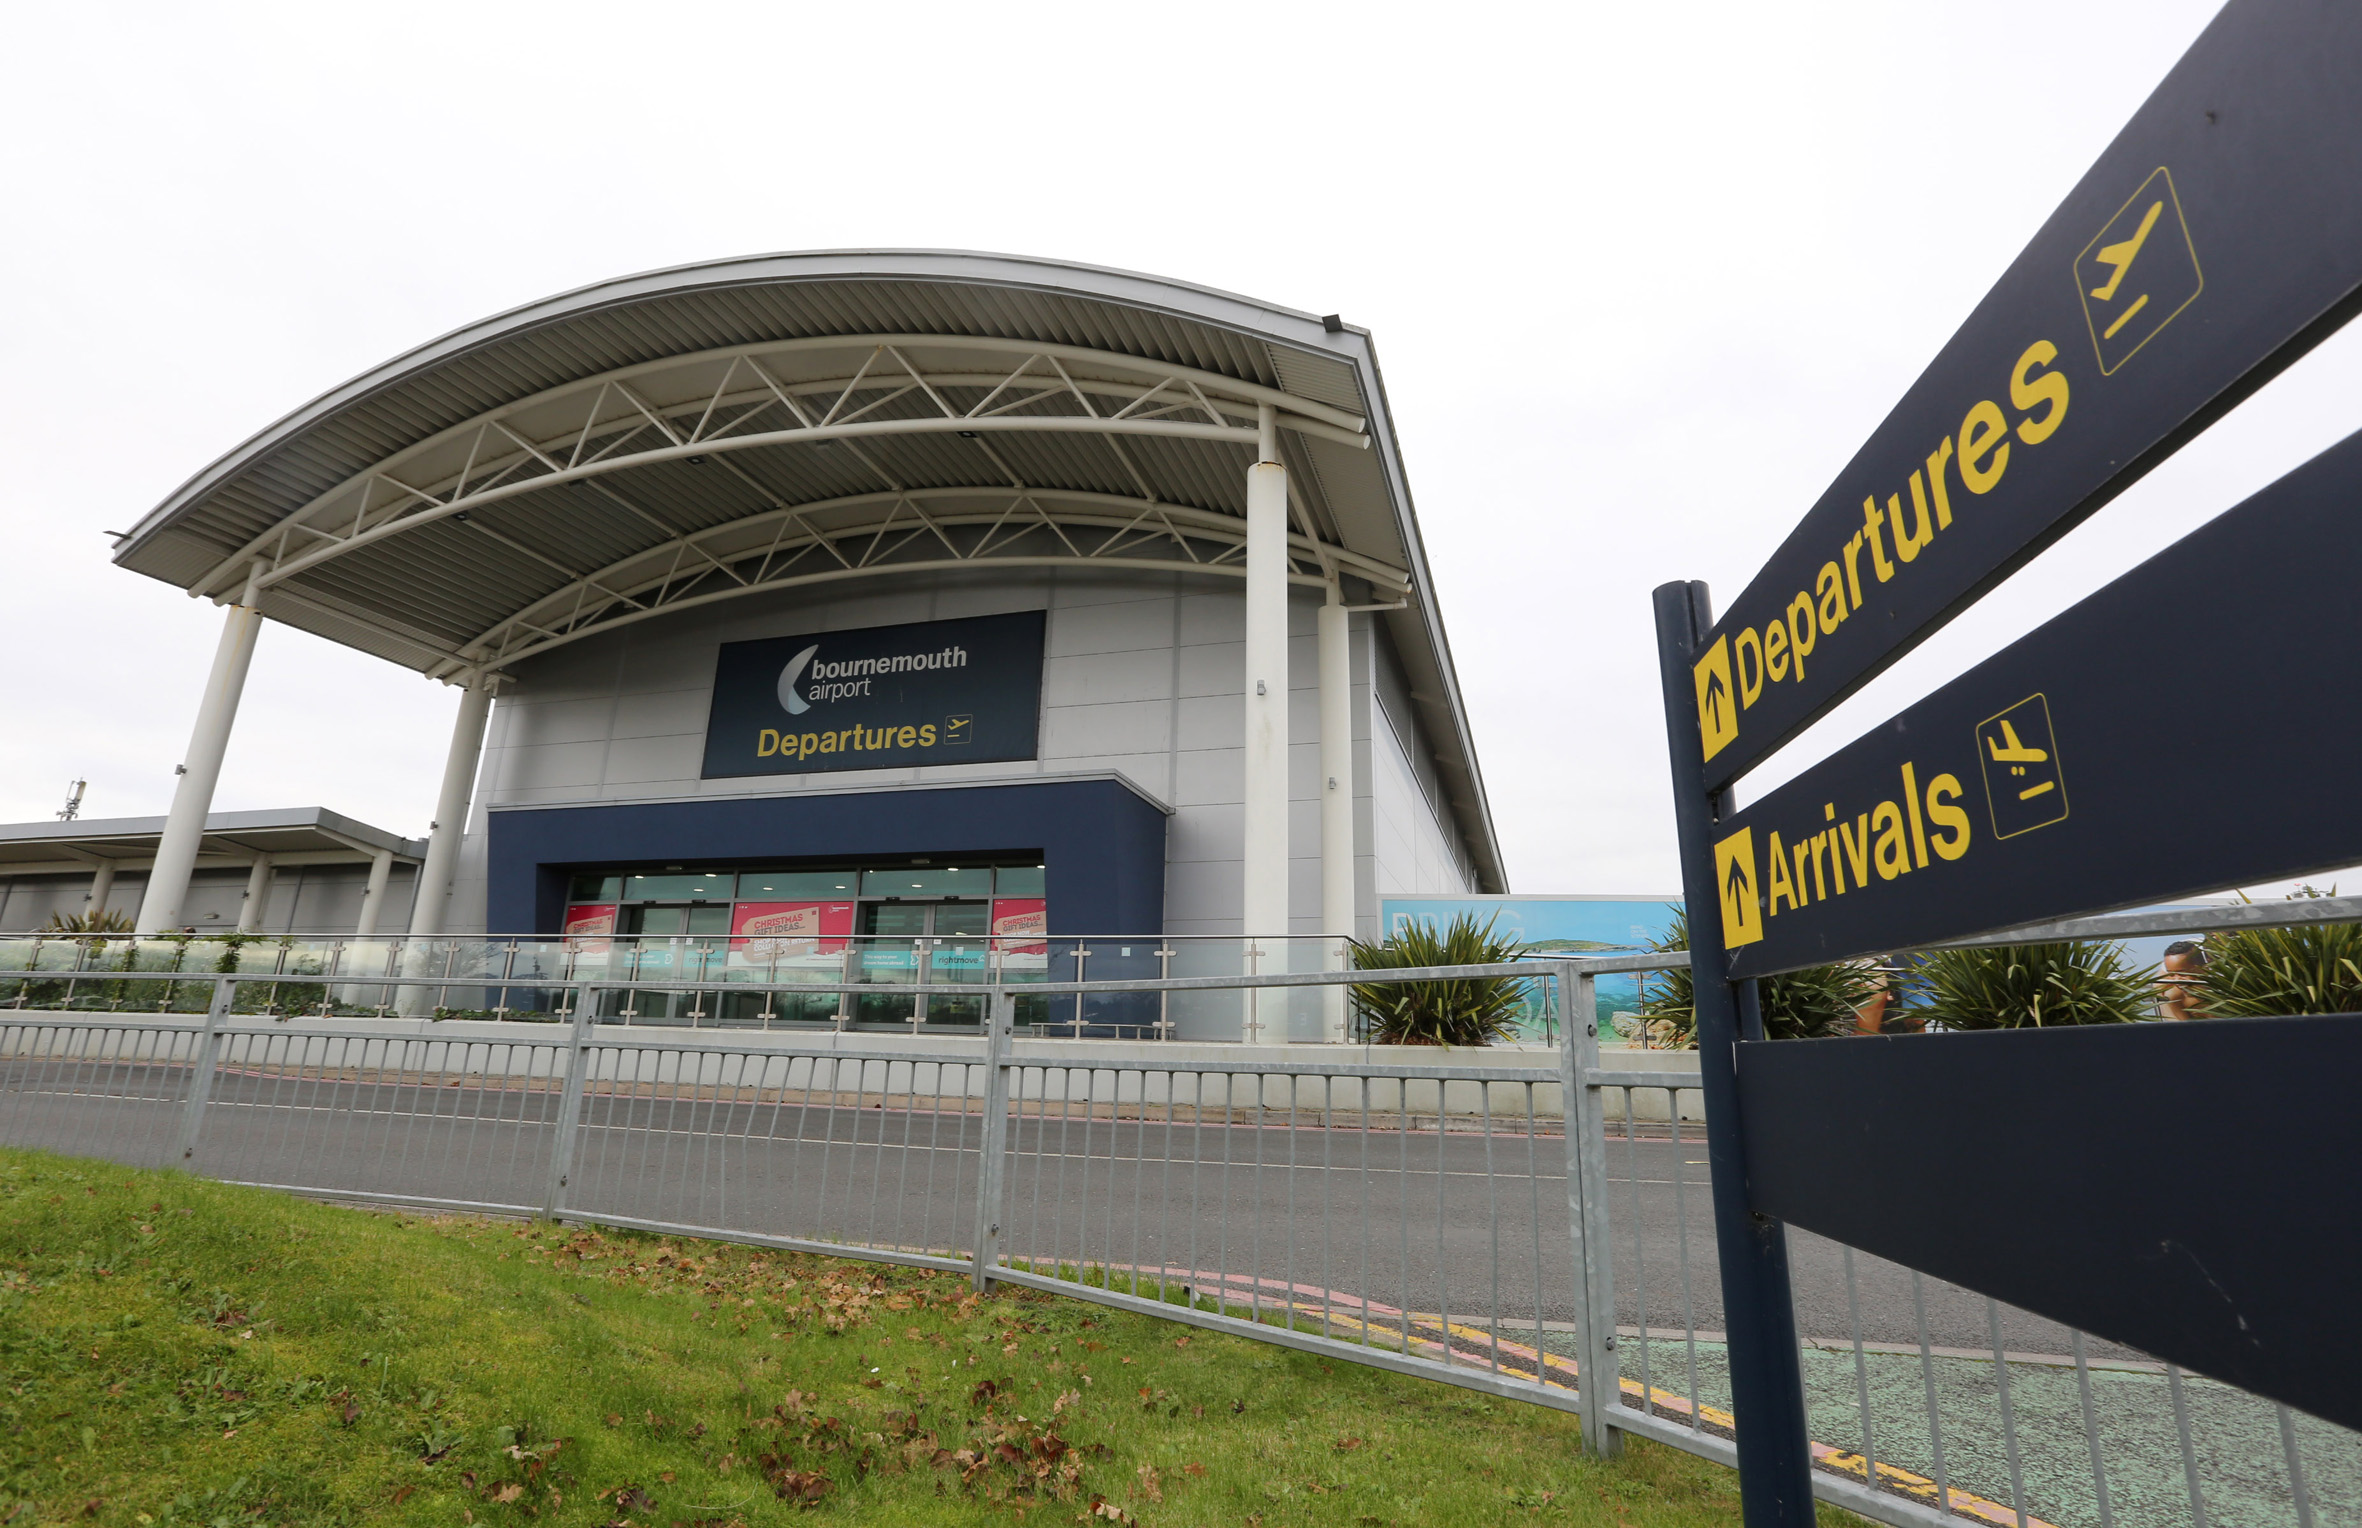 Bournemouth Aviation Park & Airport